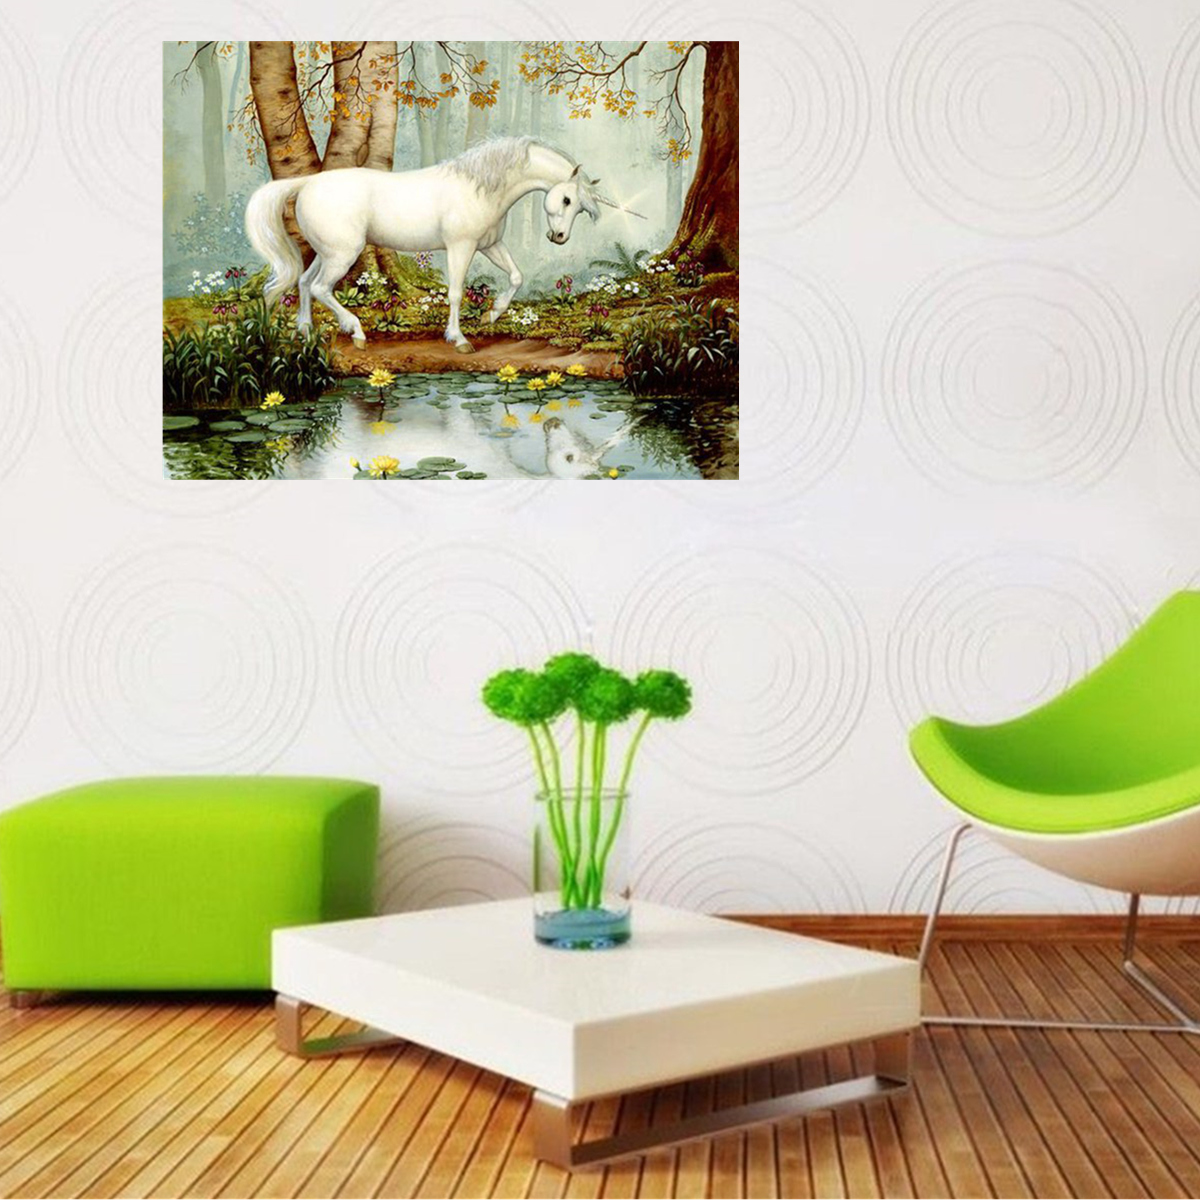 30x40cm Unicorn 5d Diy Diamond Painting Kit Cross Stitch Wall Home Decor Craft Ebay